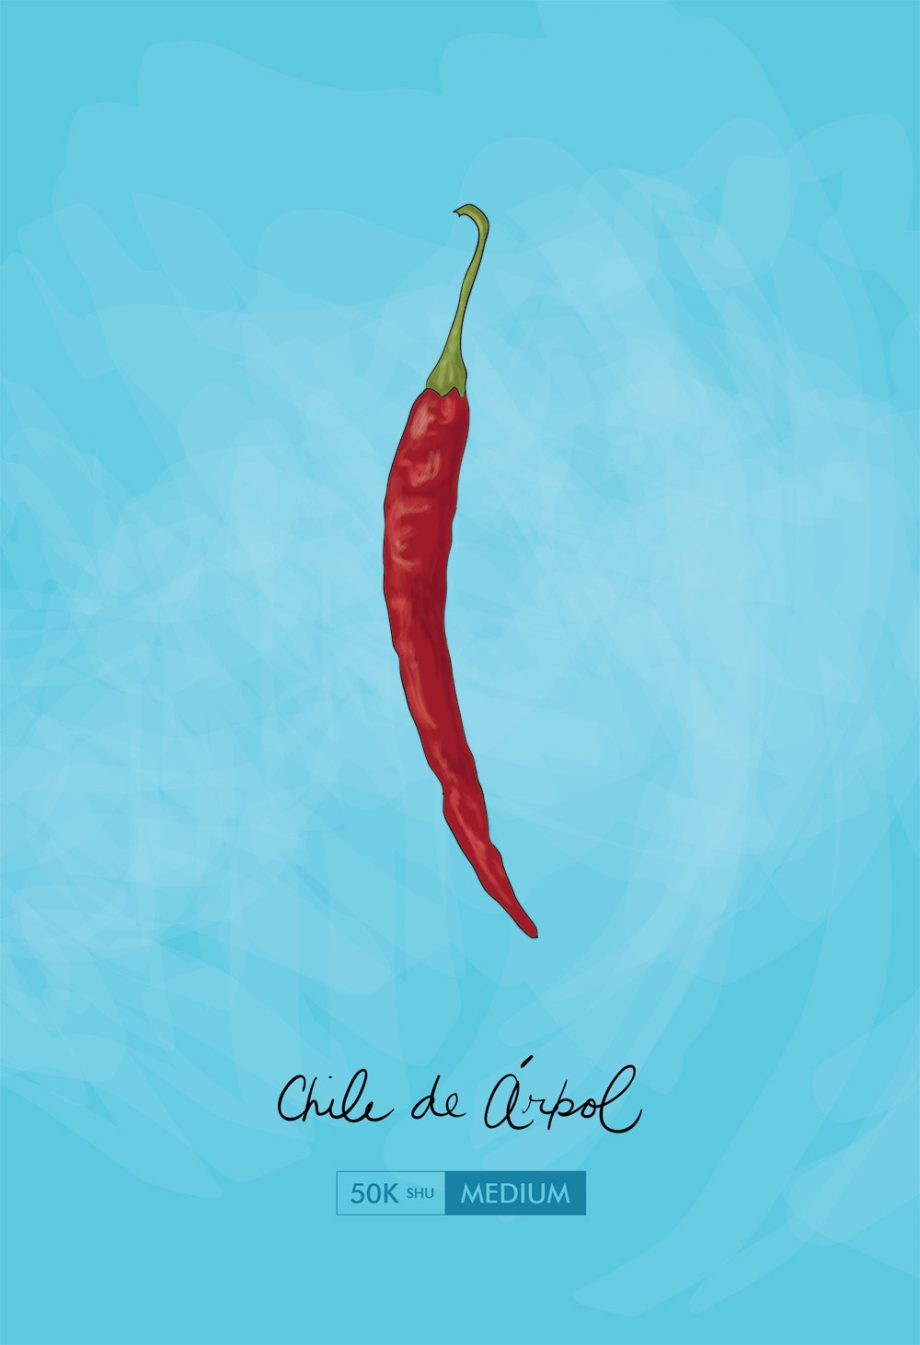 Chile de Arbol Kitchen Art Chili Pepper Print Mexican Rustic Giclee on Cotton Canvas or Paper Canvas Wall Decor